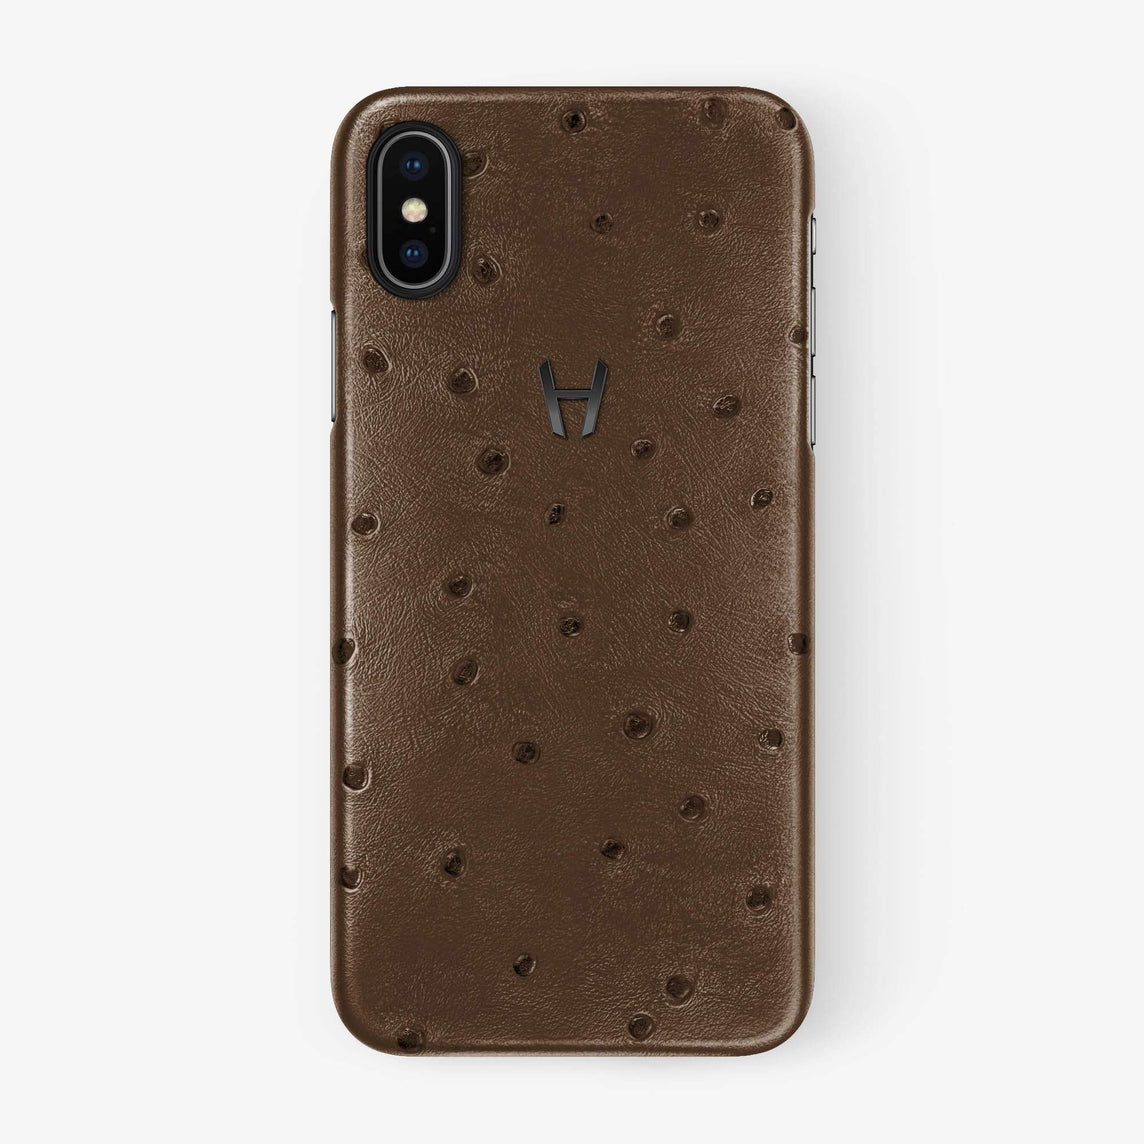 Ostrich Case iPhone Xs Max | Tobacco - Black withouth-personalization